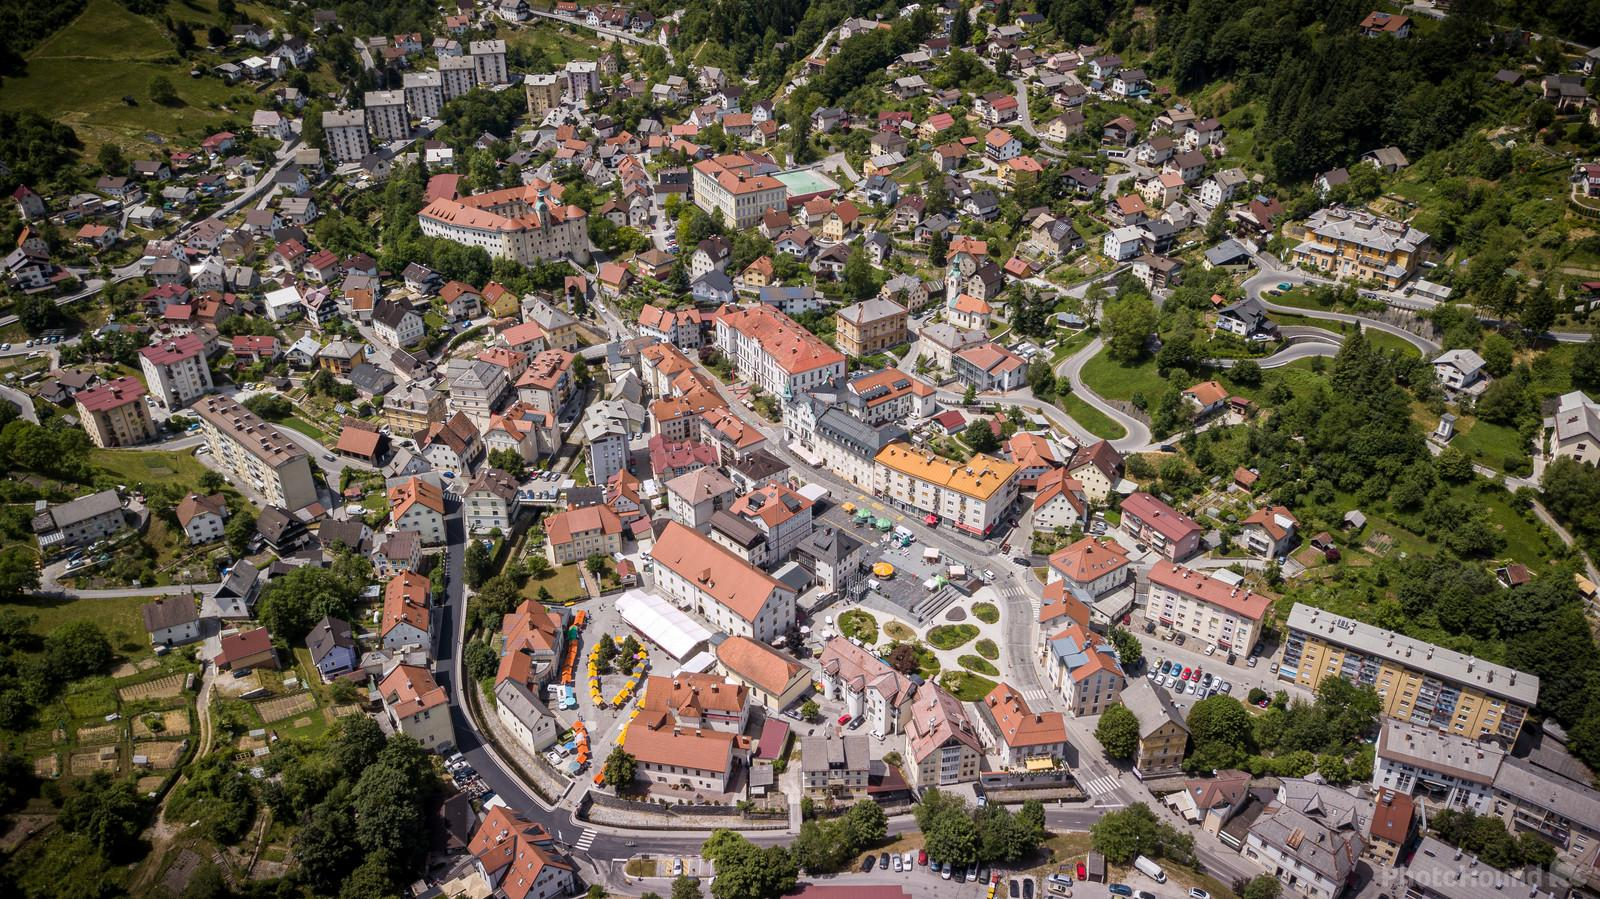 Idrija town center from above. 